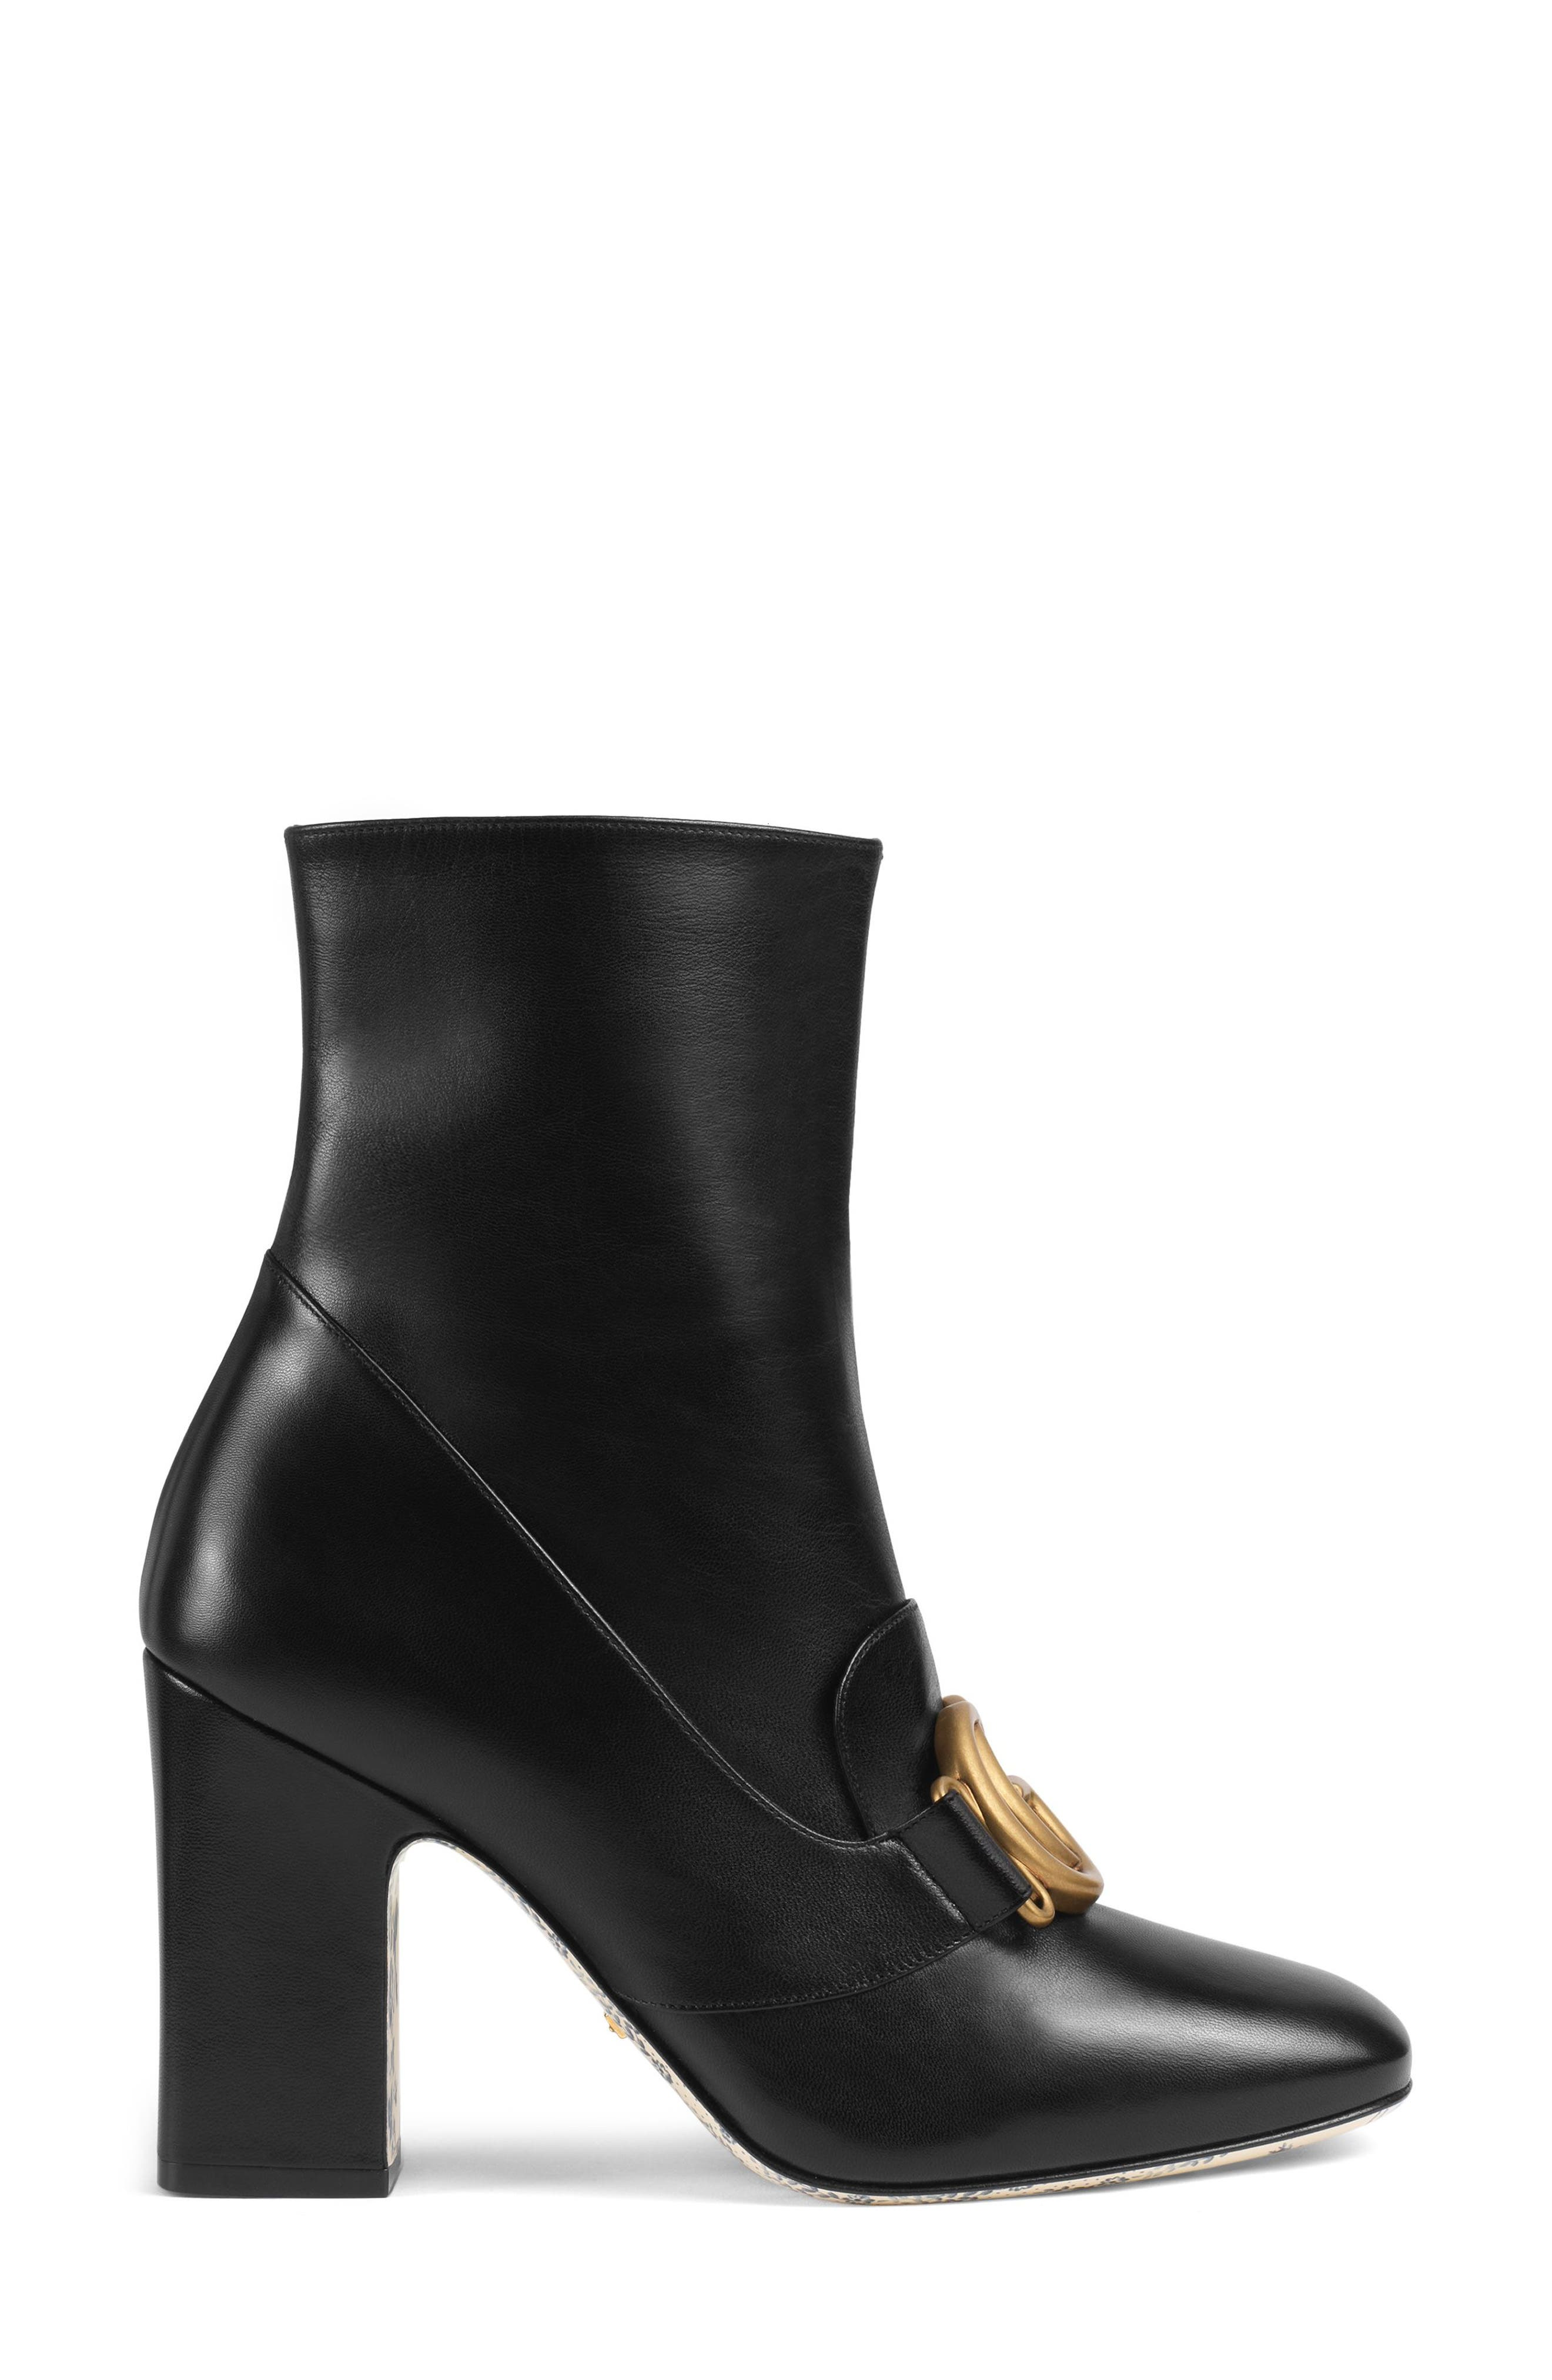 Victoire Bootie,                             Alternate thumbnail 2, color,                             BLACK LEATHER